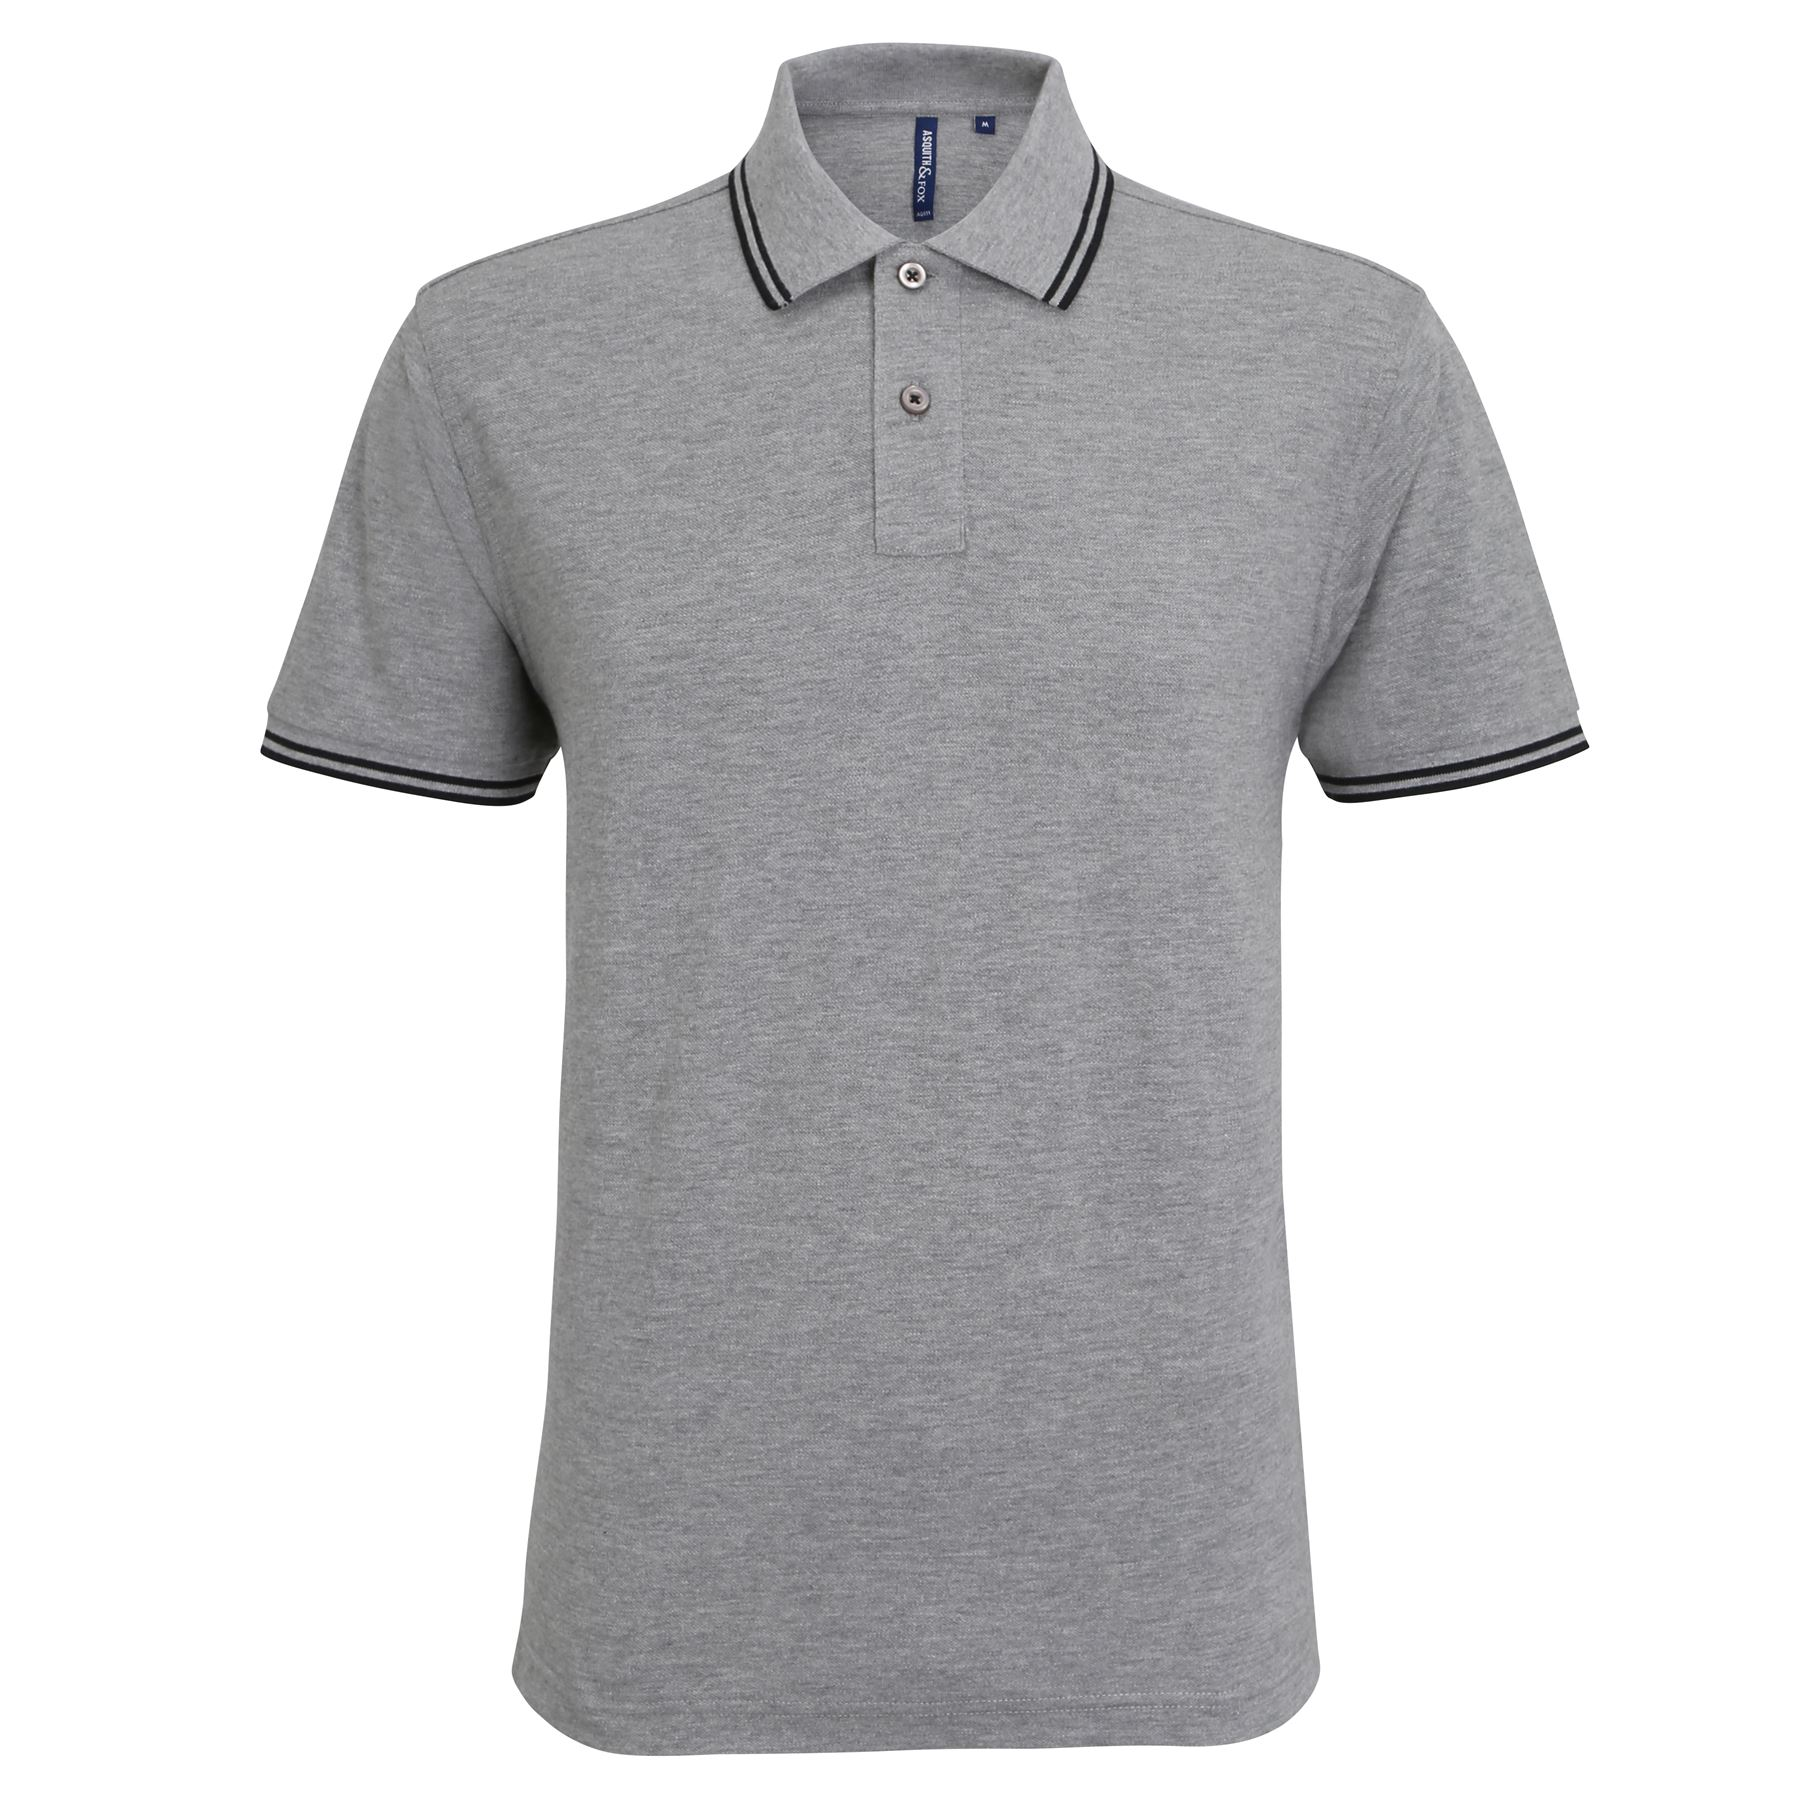 Asquith-amp-Fox-Men-039-s-Short-Sleeve-Classic-Fit-Tipped-Polo-Smart-Casual-Shirt